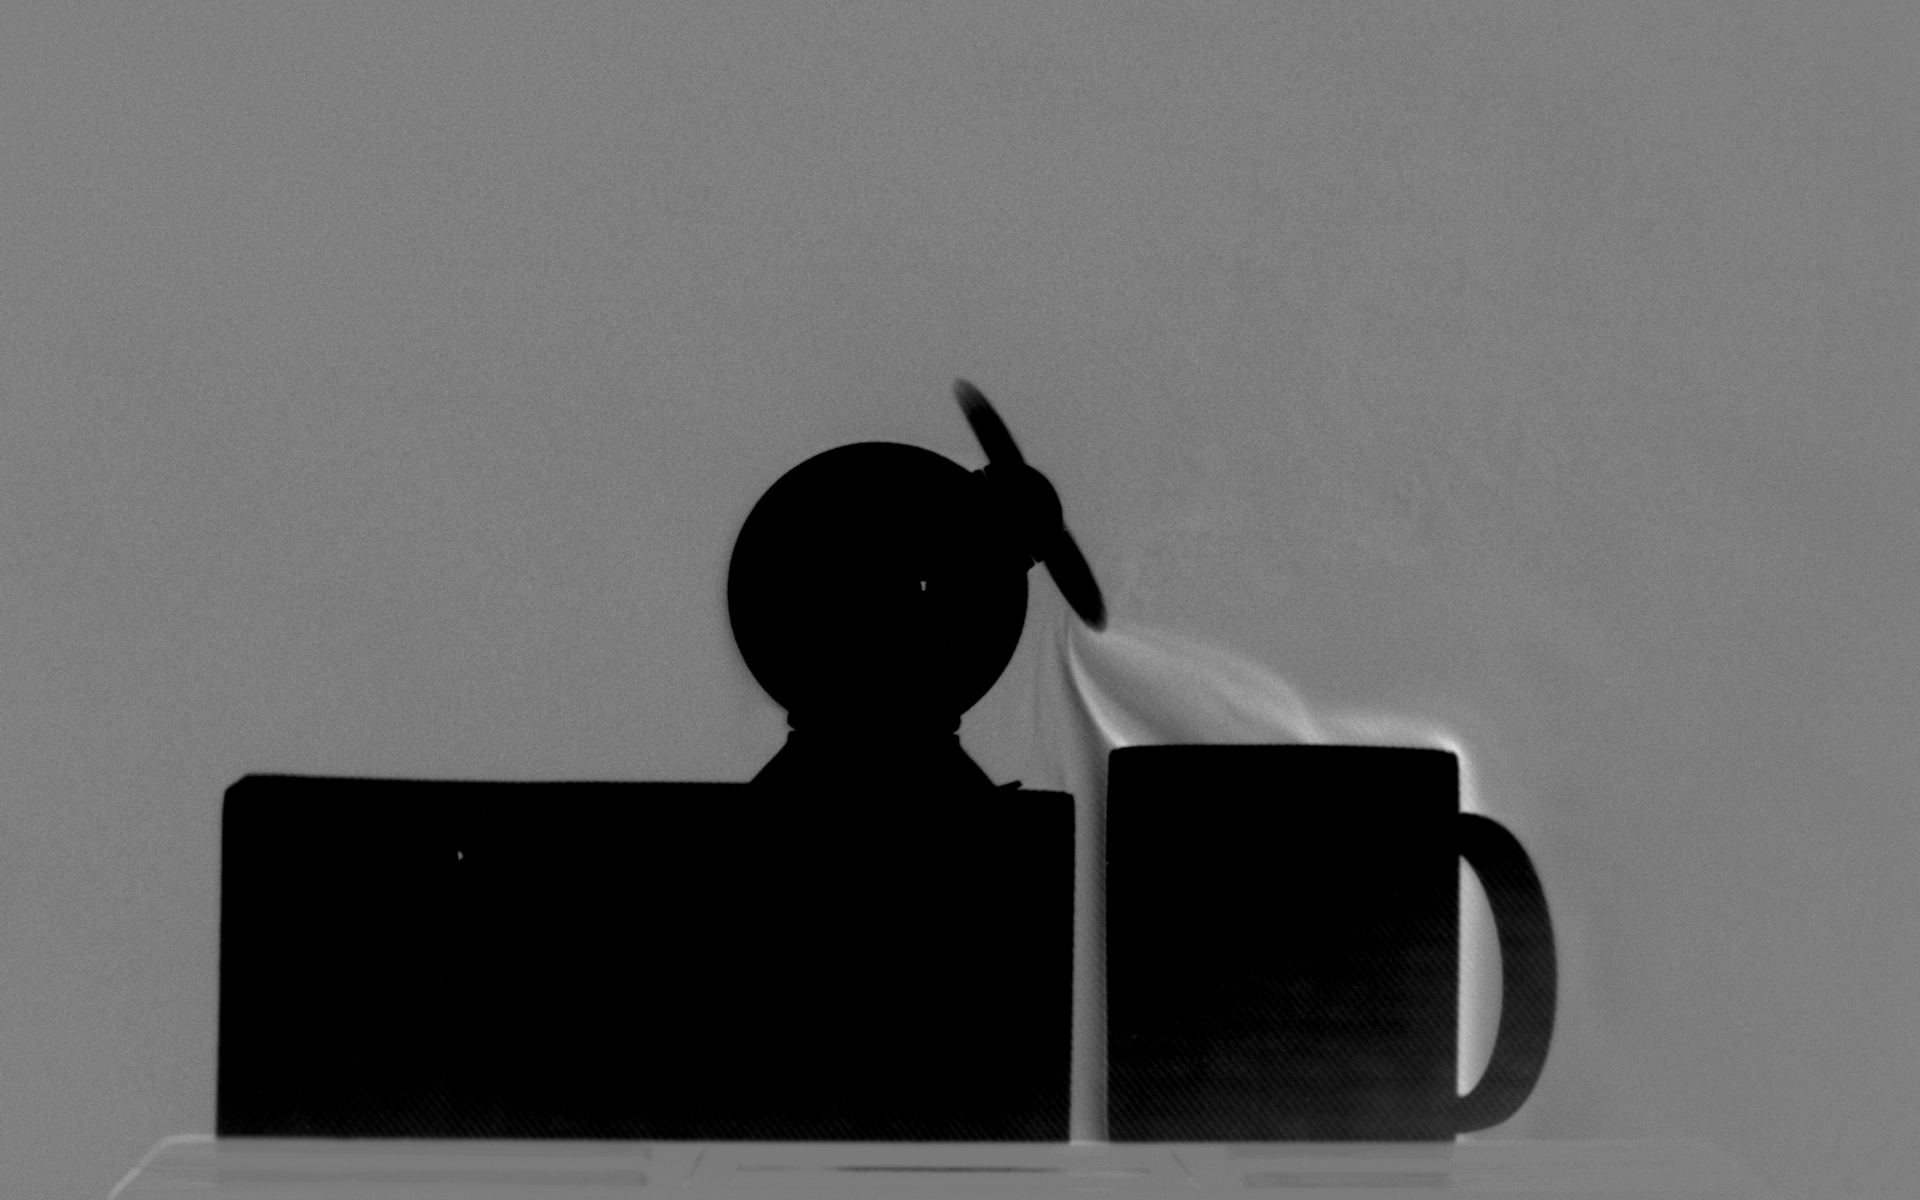 Schlieren image of a fan drawing a thermal updraft off of a teacup